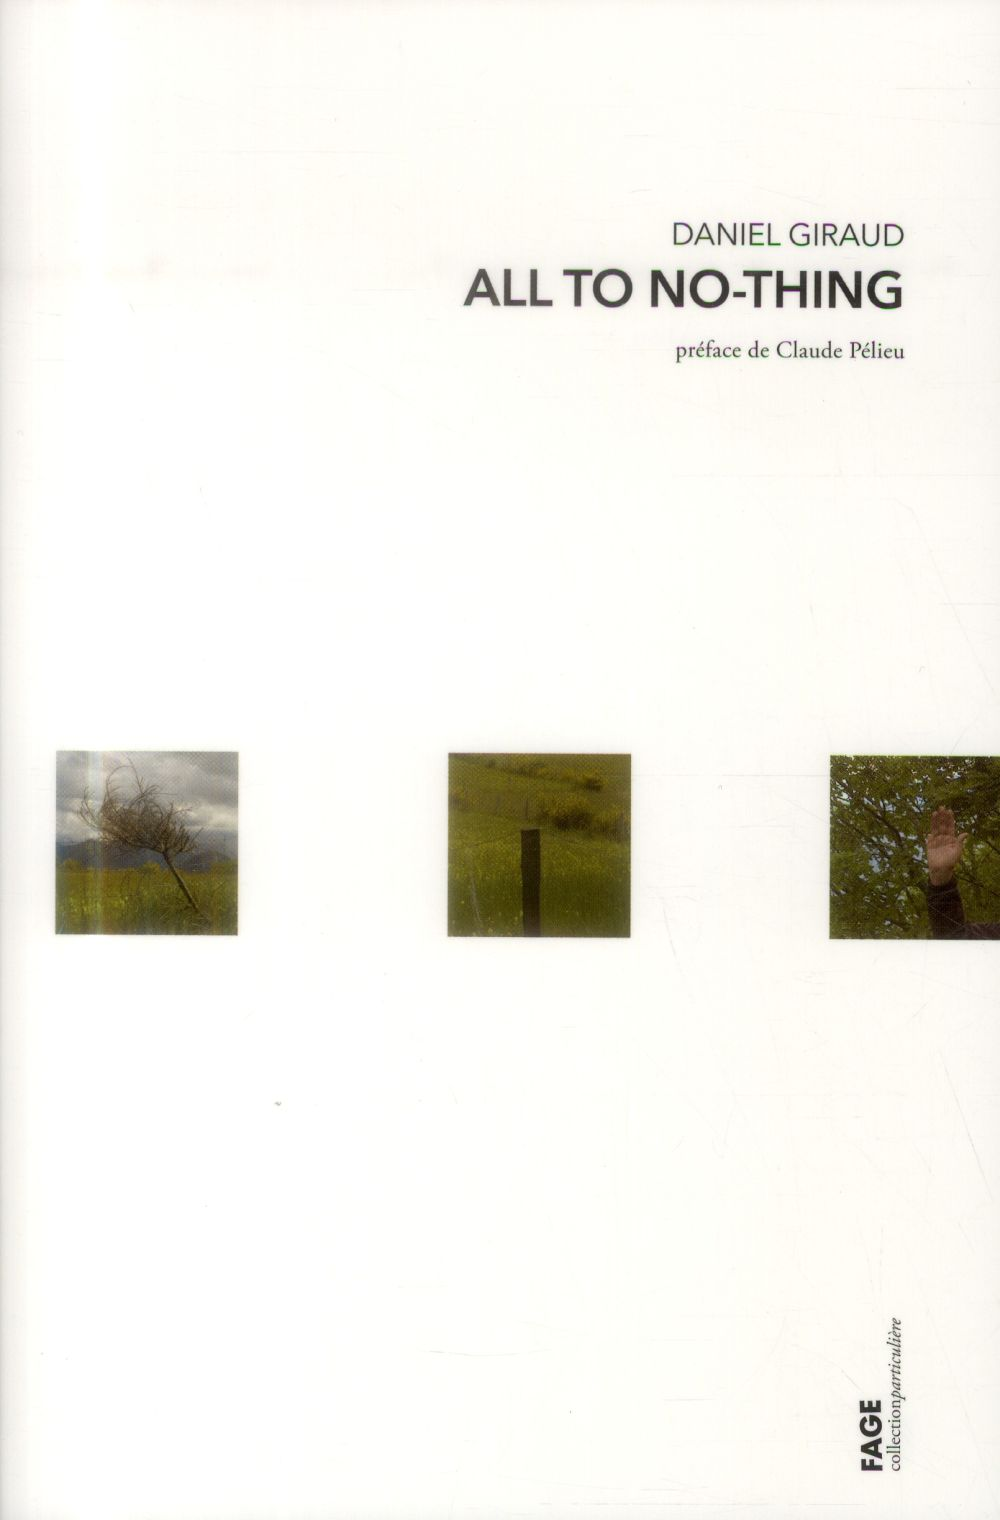 All to no-thing